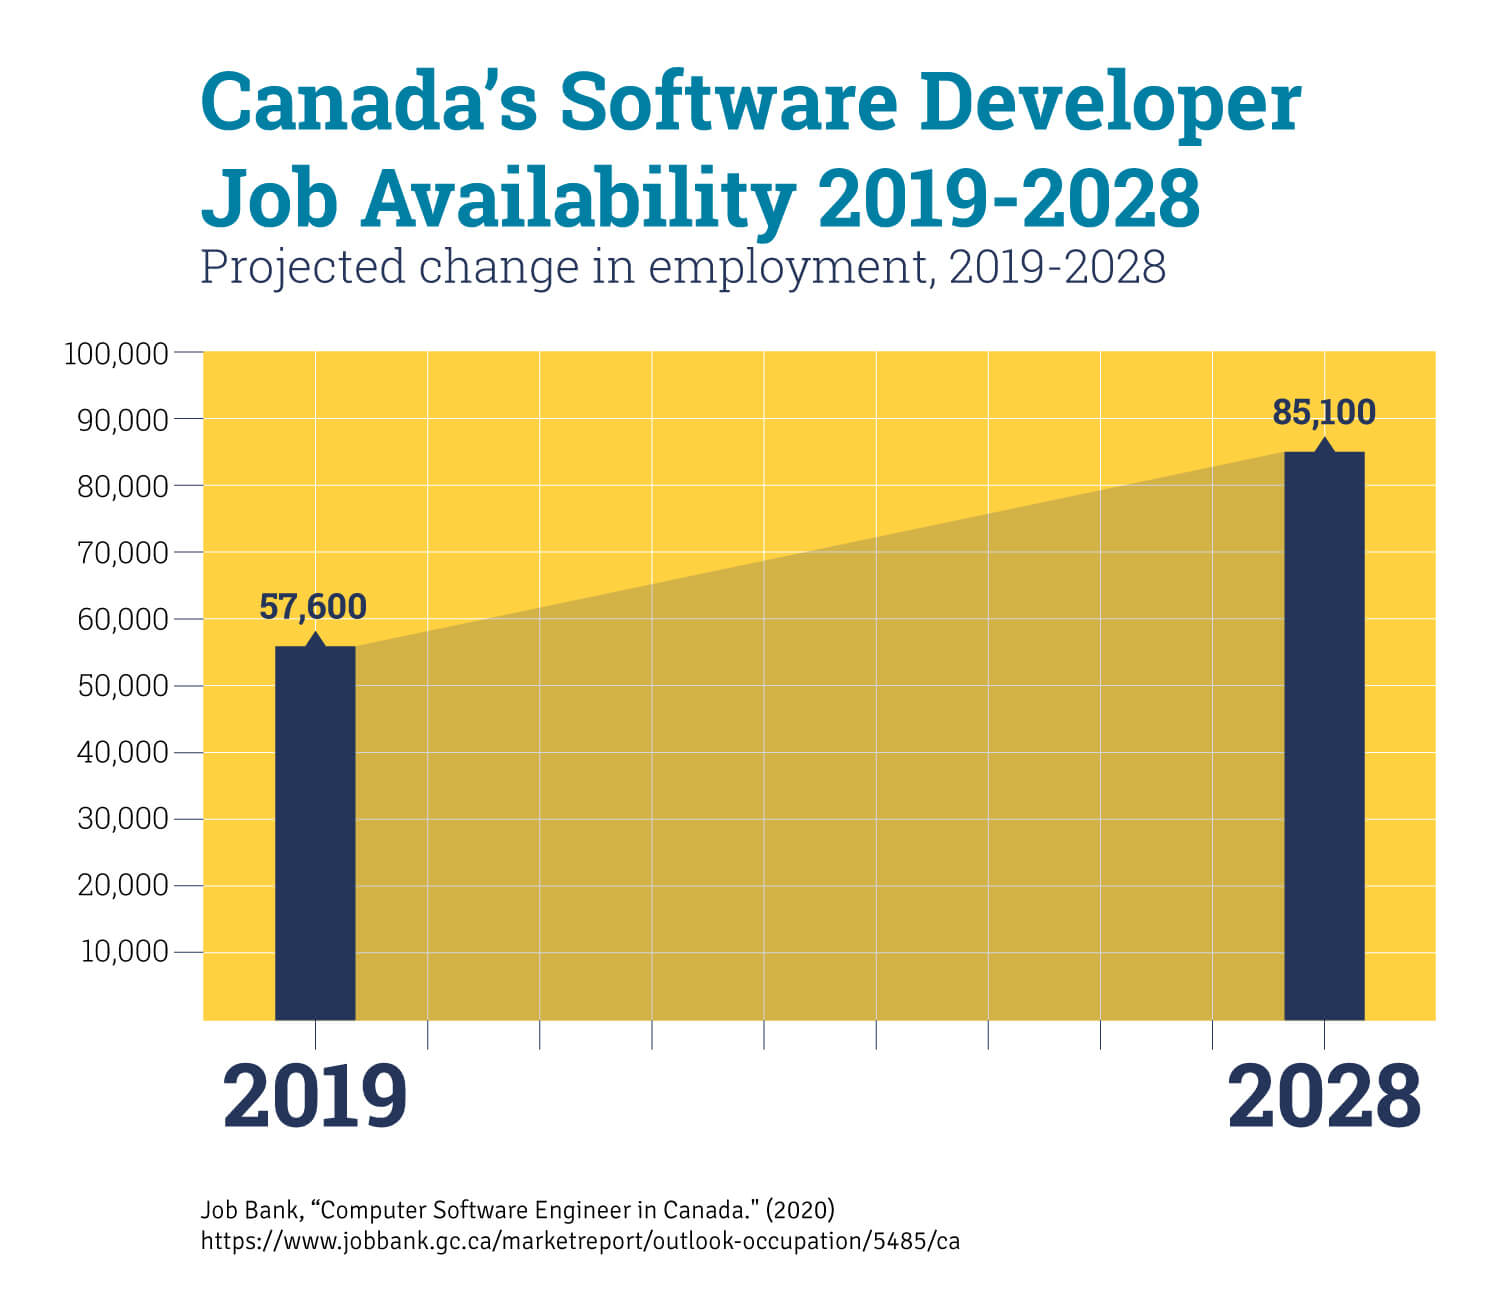 A chart that shows the projected job growth for full stack developers in Canada